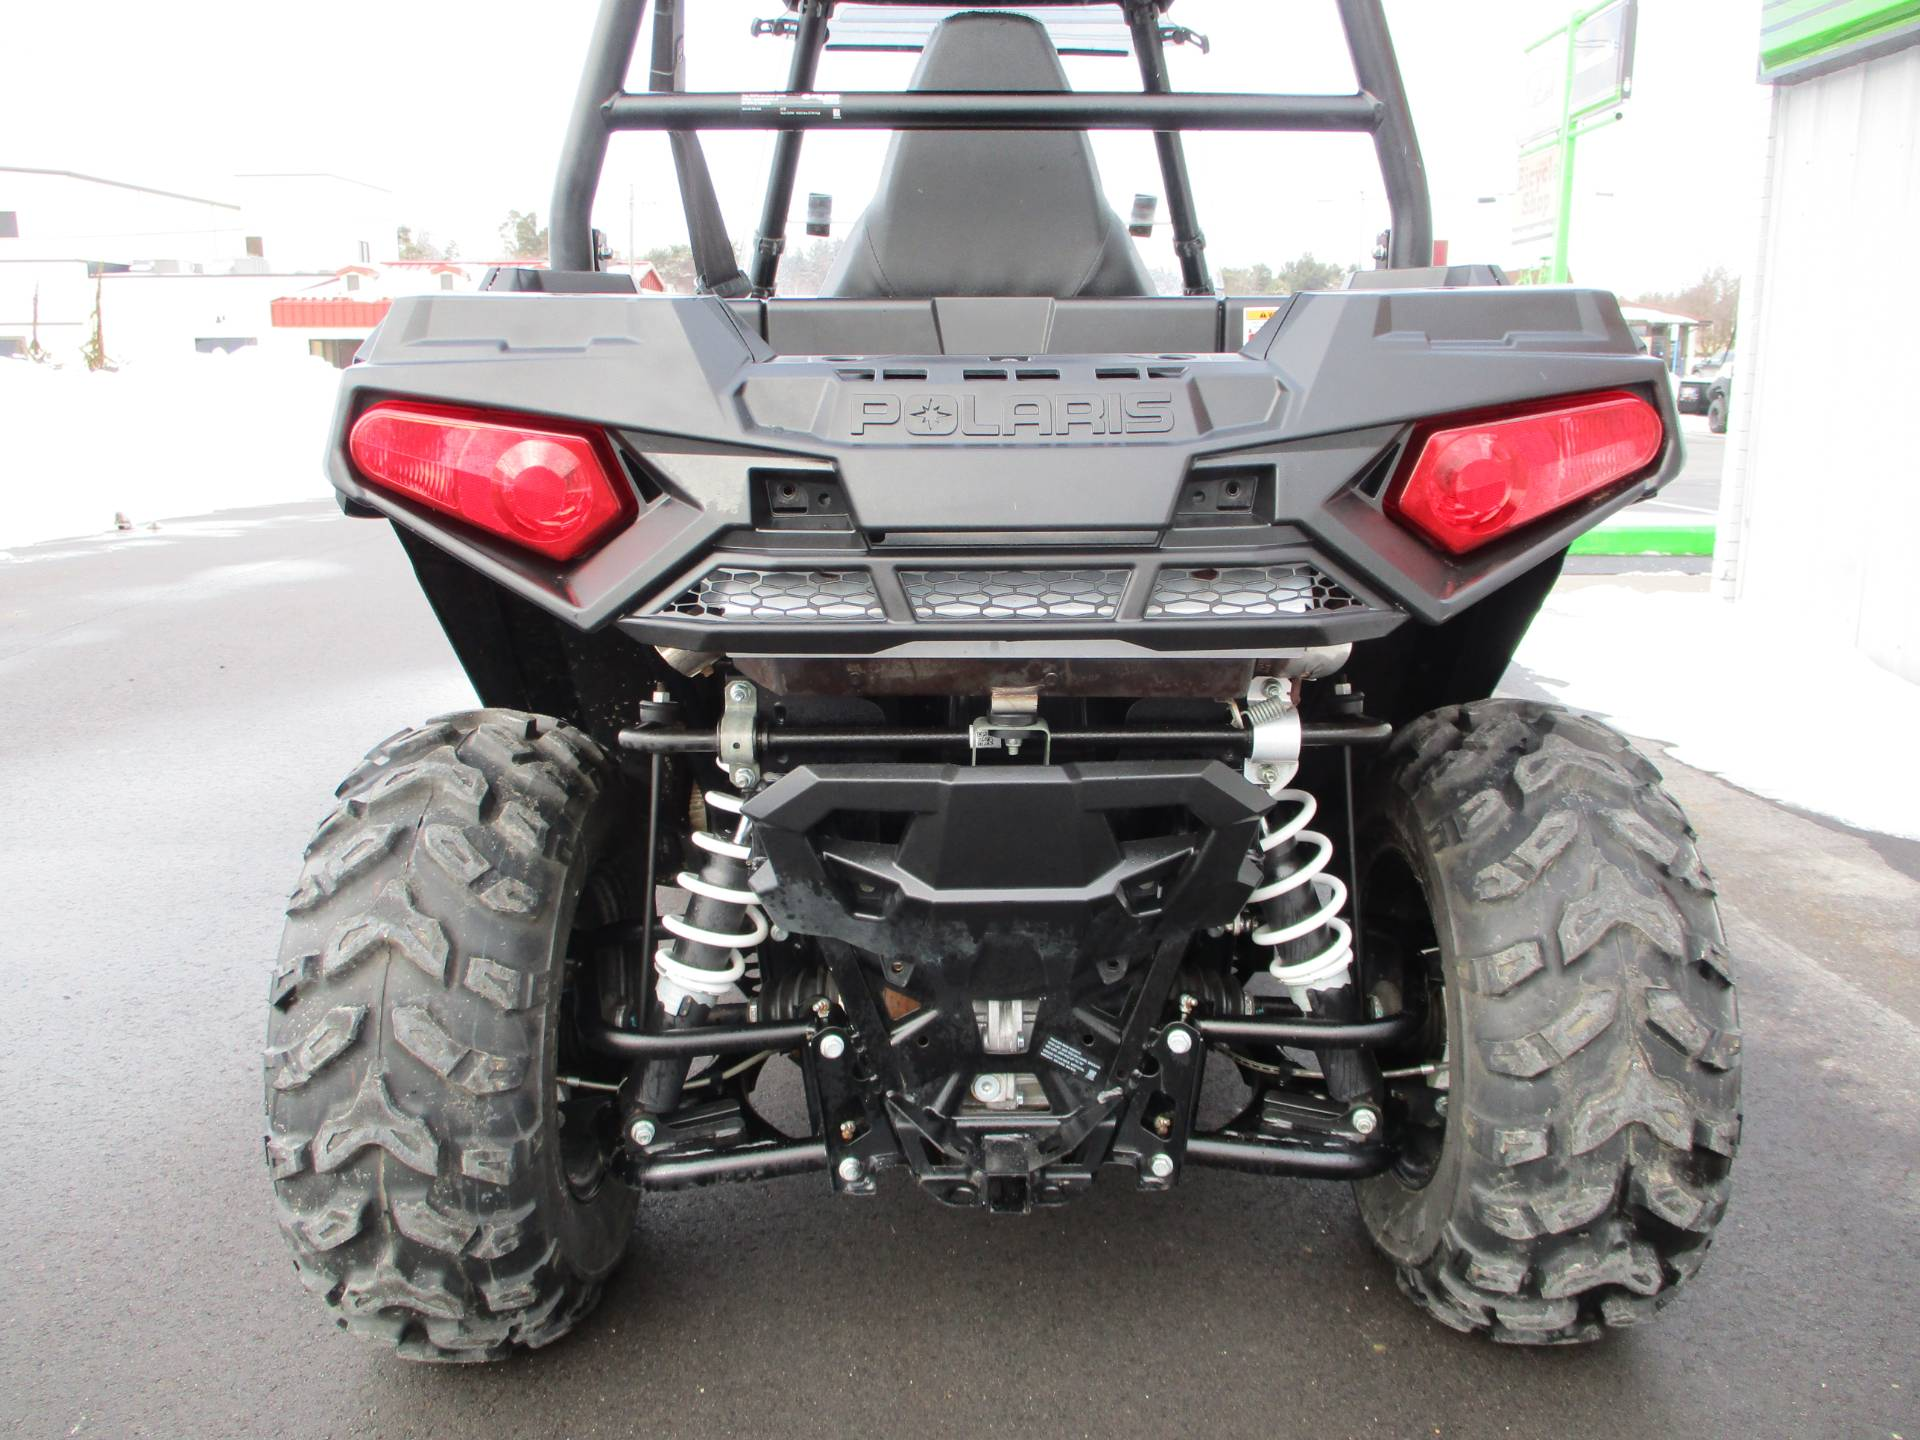 2016 Polaris ACE 900 SP in Howell, Michigan - Photo 13